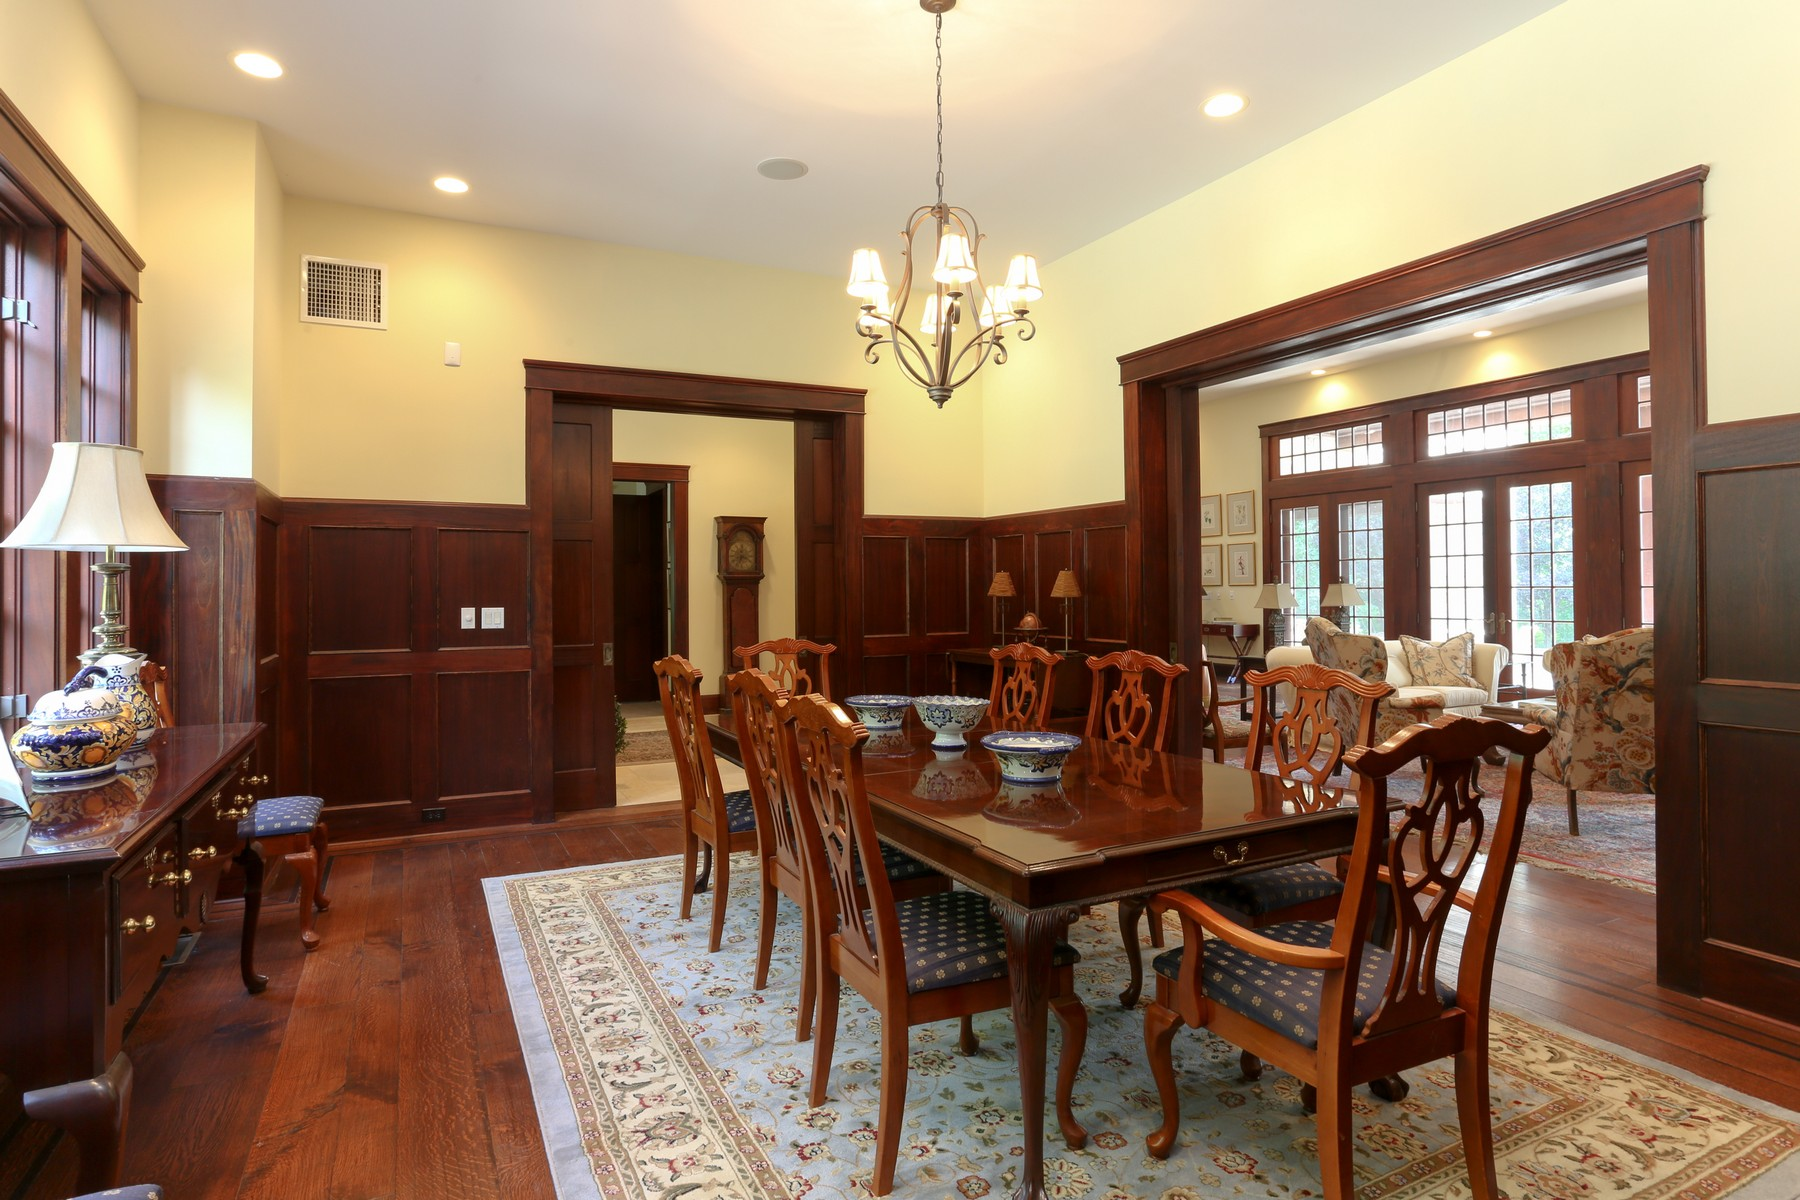 Additional photo for property listing at Langhurst Lodge 19 Lawes Lane Garrison, New York 10524 United States